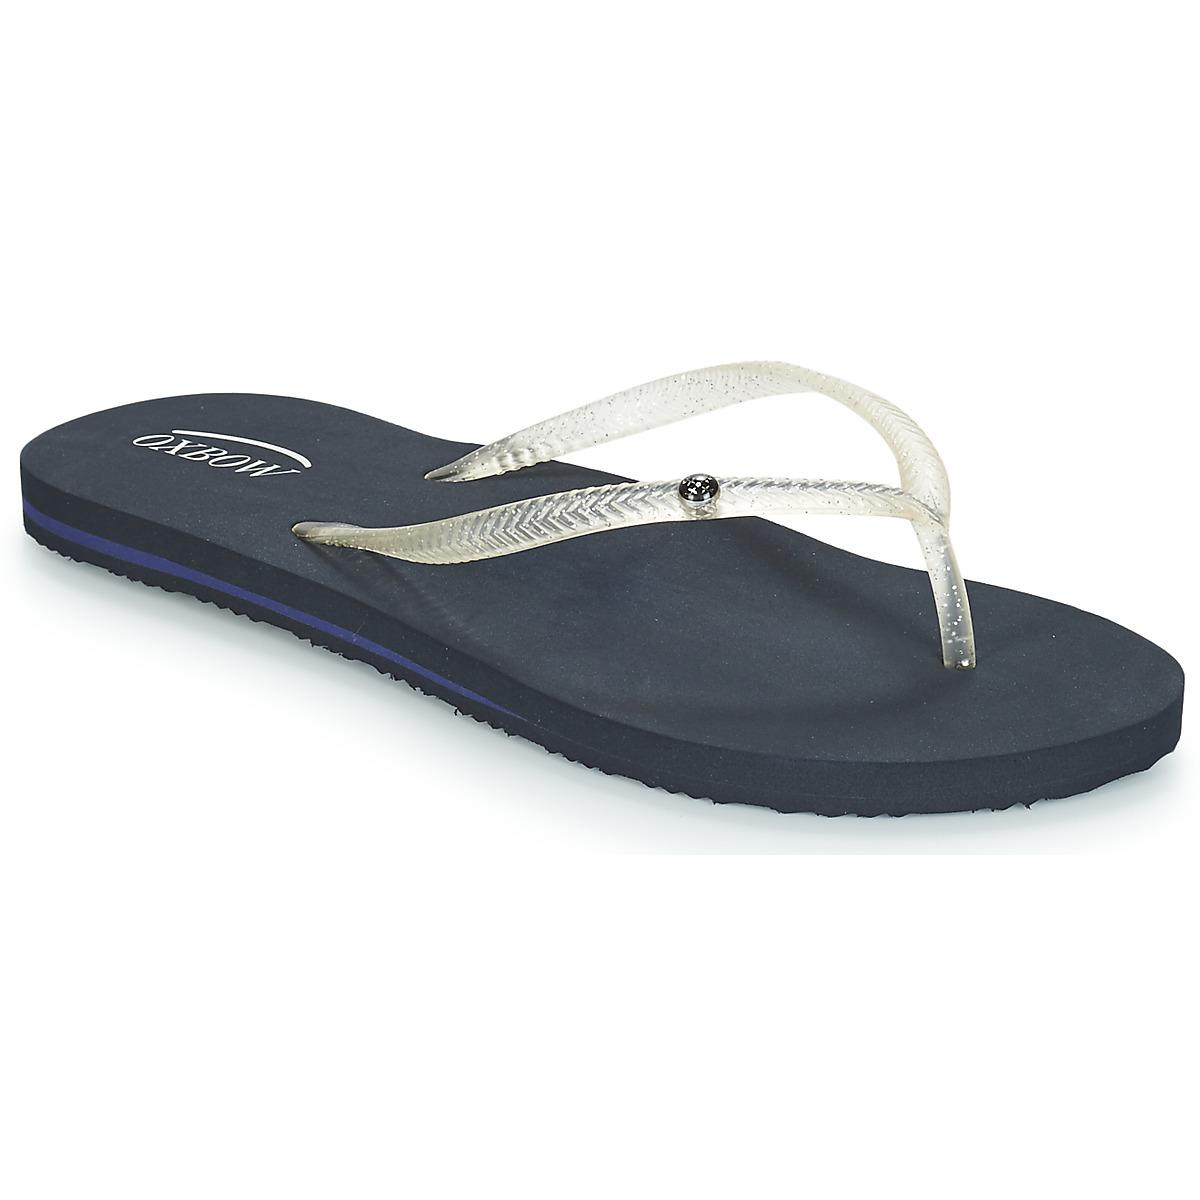 39c9da94b497 Oxbow Vong Flip Flops   Sandals (shoes) in Blue - Lyst